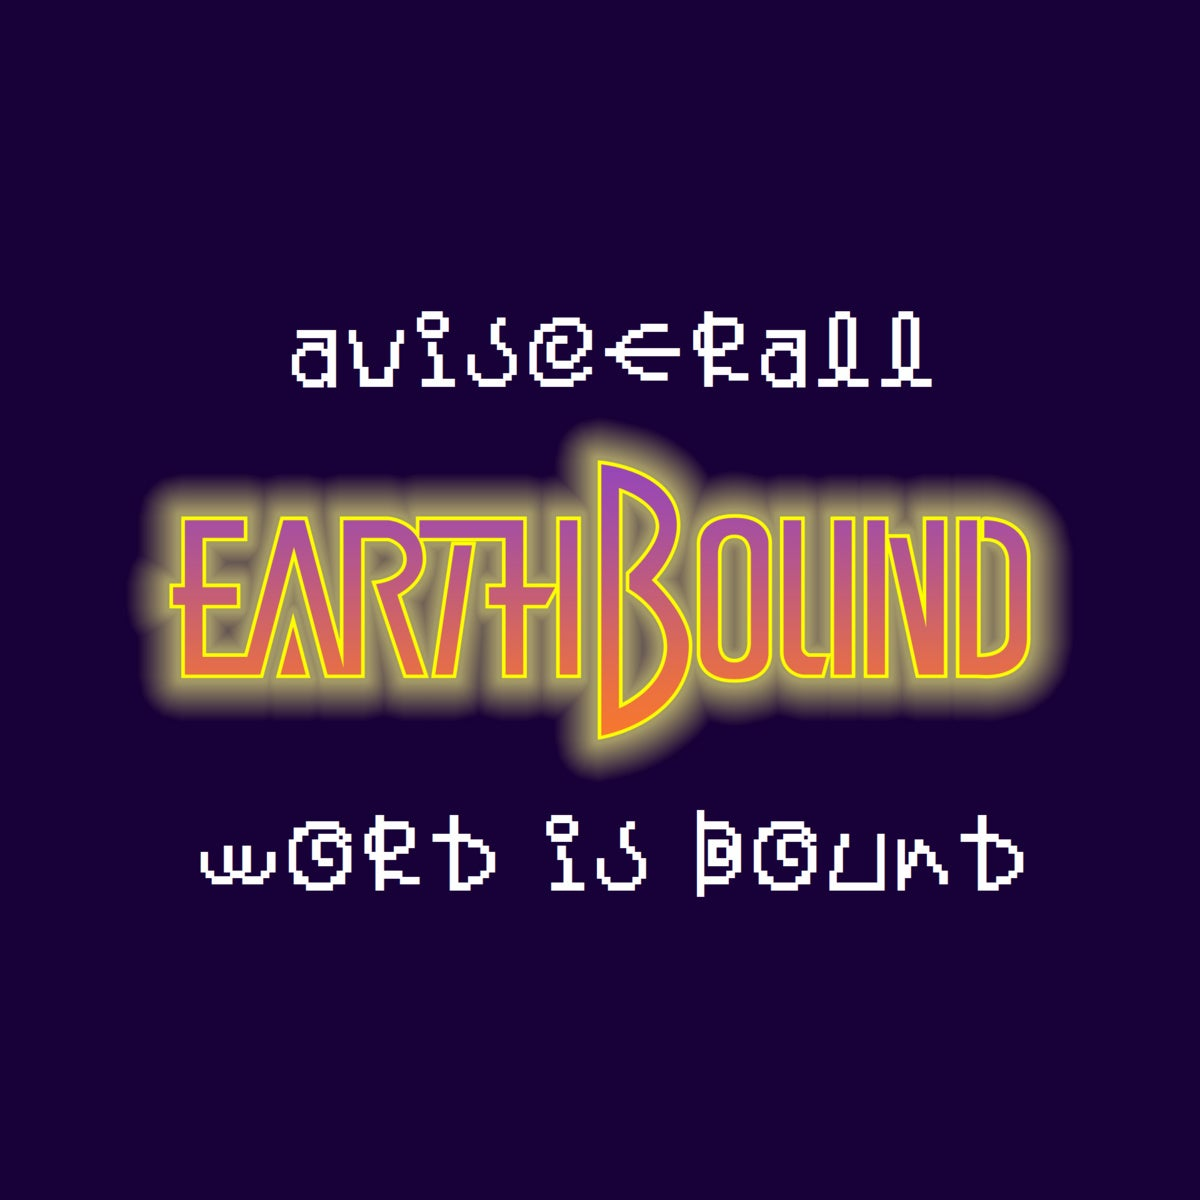 Earthbound Rap Mashup Is Appropriately Odd